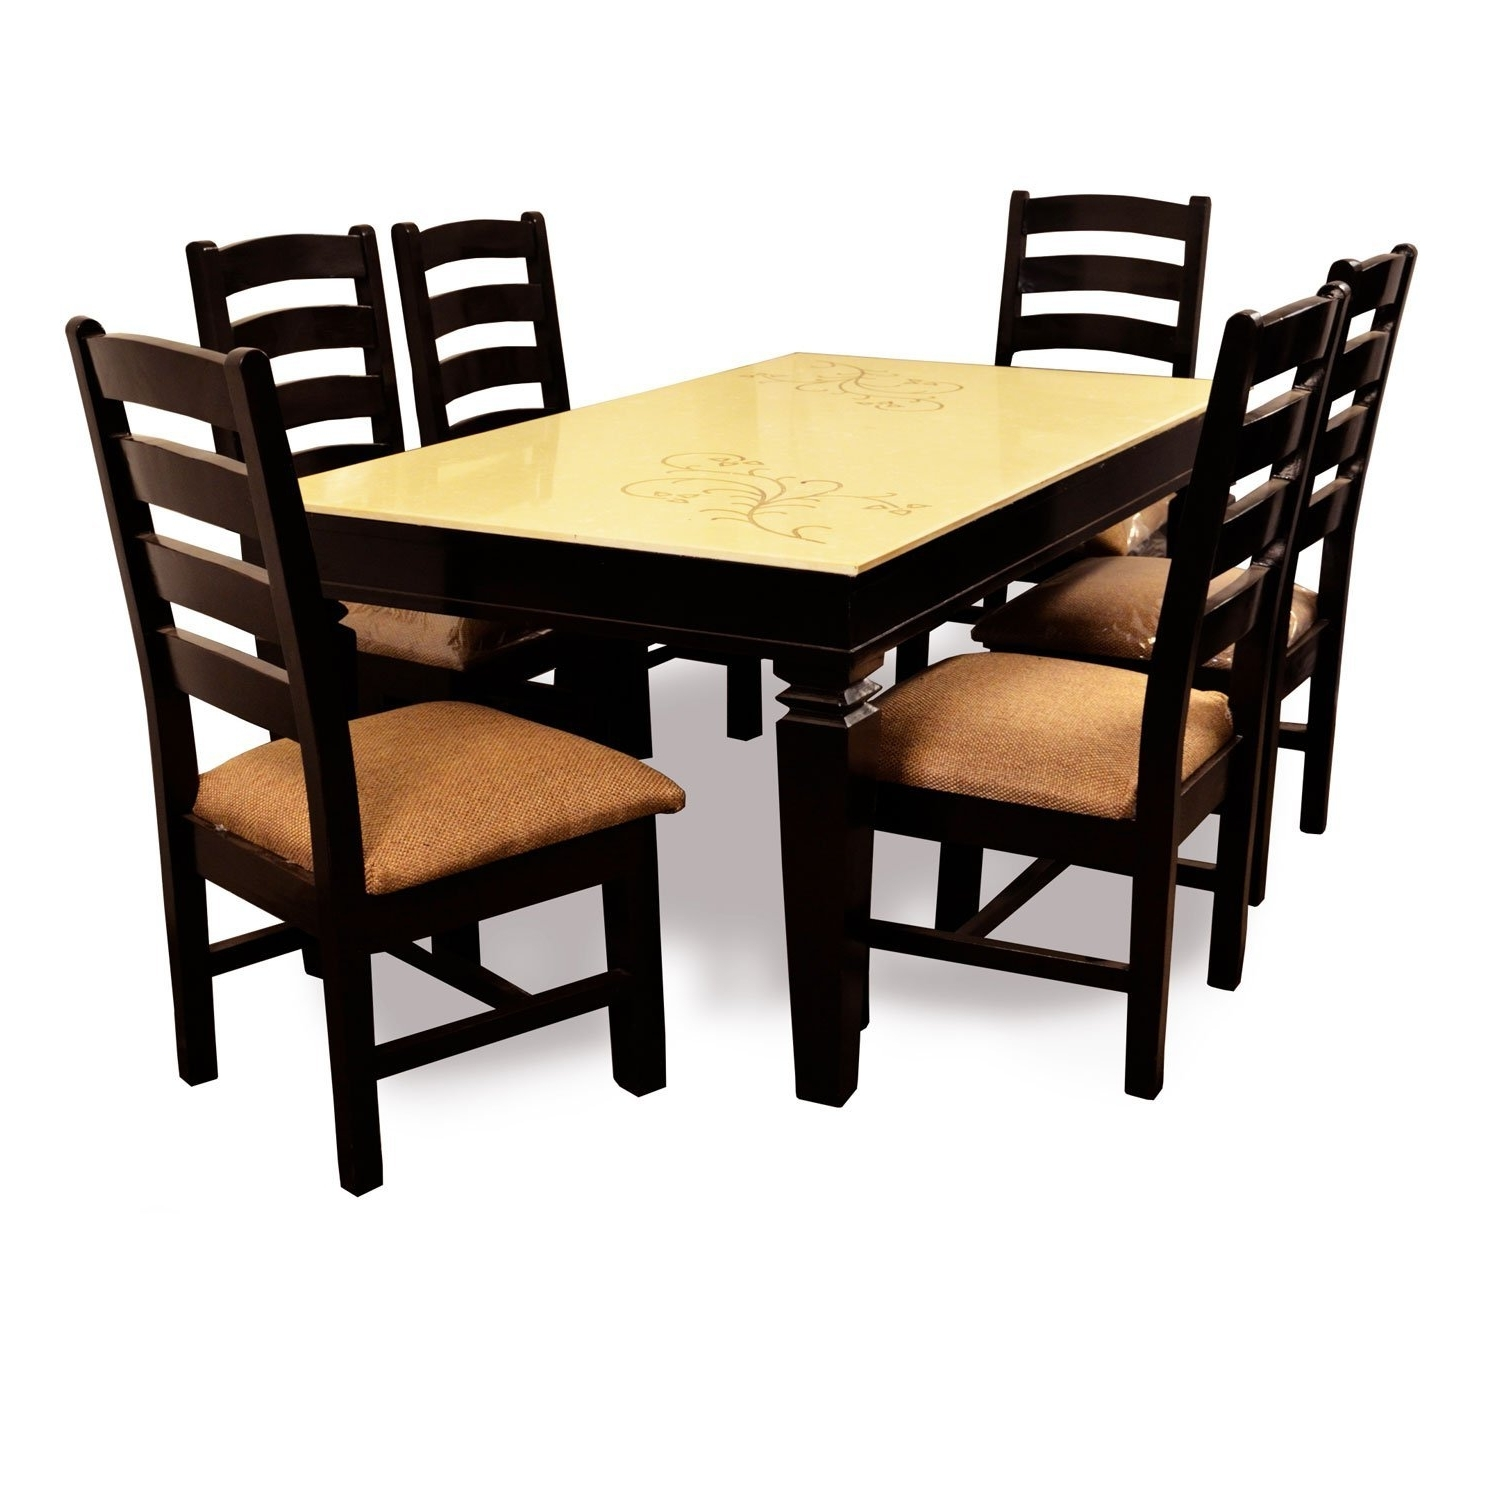 Preferred 6 Seater Dining Table, Six Seater Dining Table, Stylish Dining Table Within Six Seater Dining Tables (View 14 of 25)